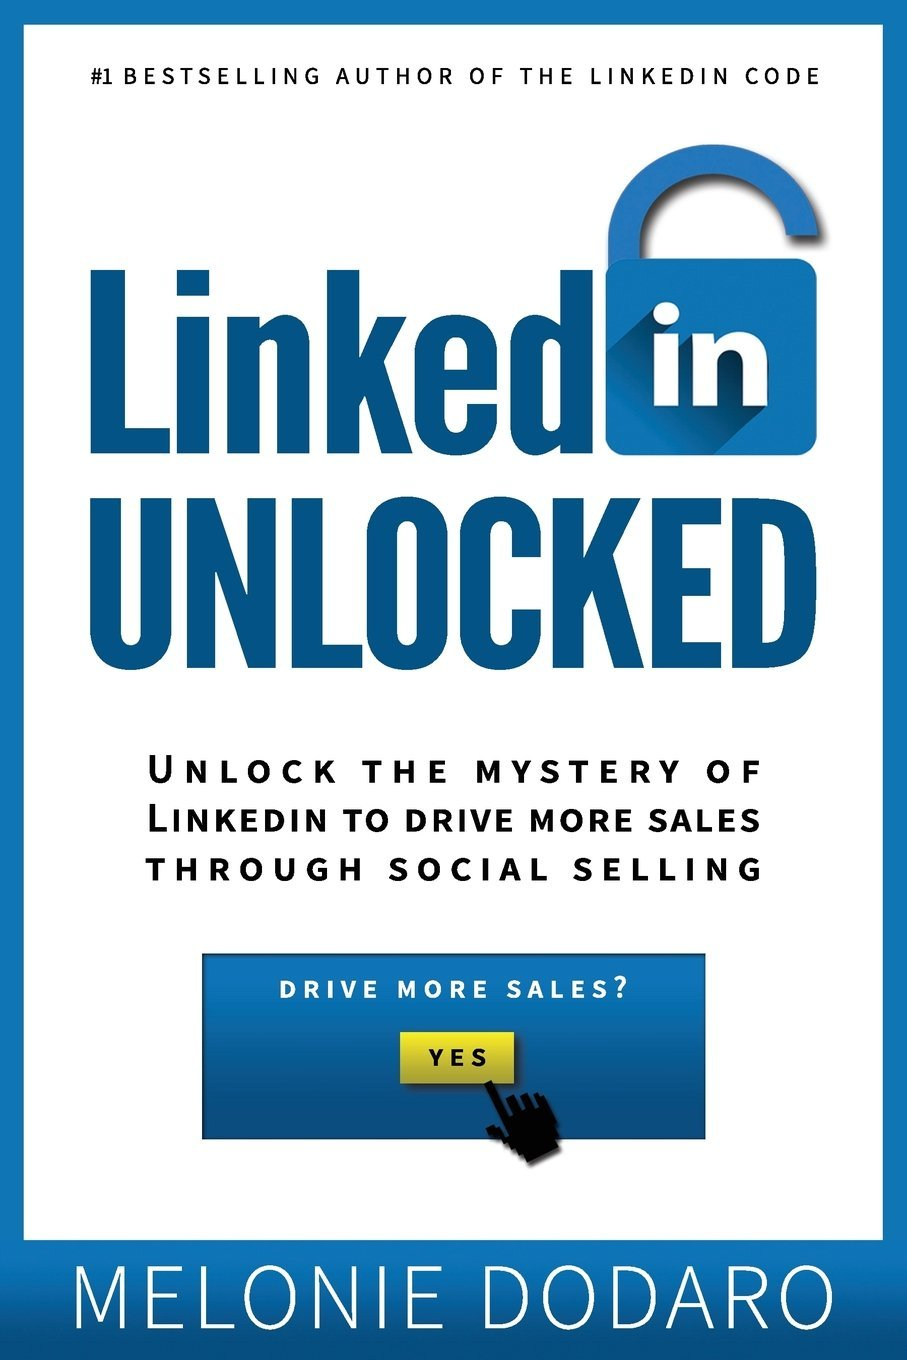 LinkedIn Unlocked Book Melonie Dodaro